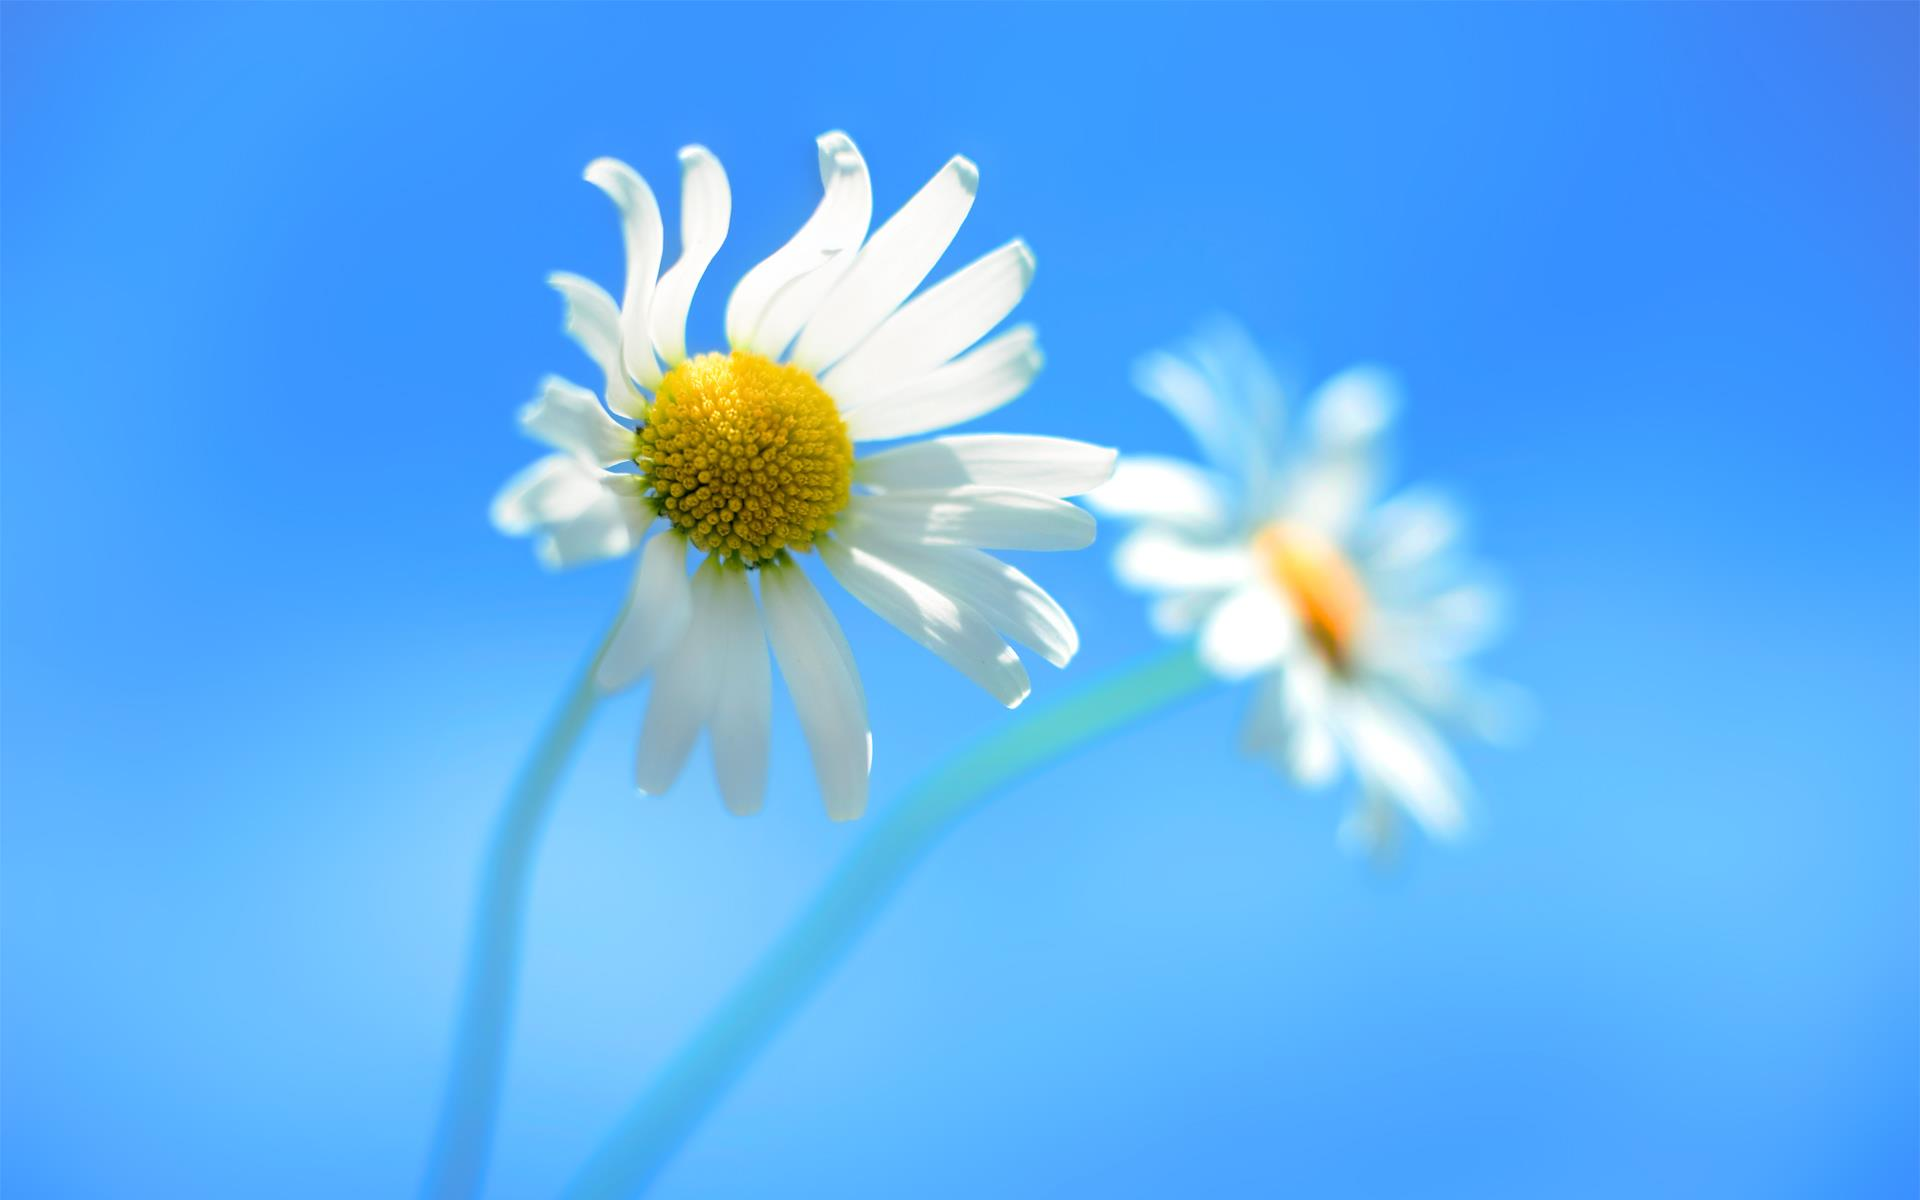 Lock Screen Wallpapers For Windows 8